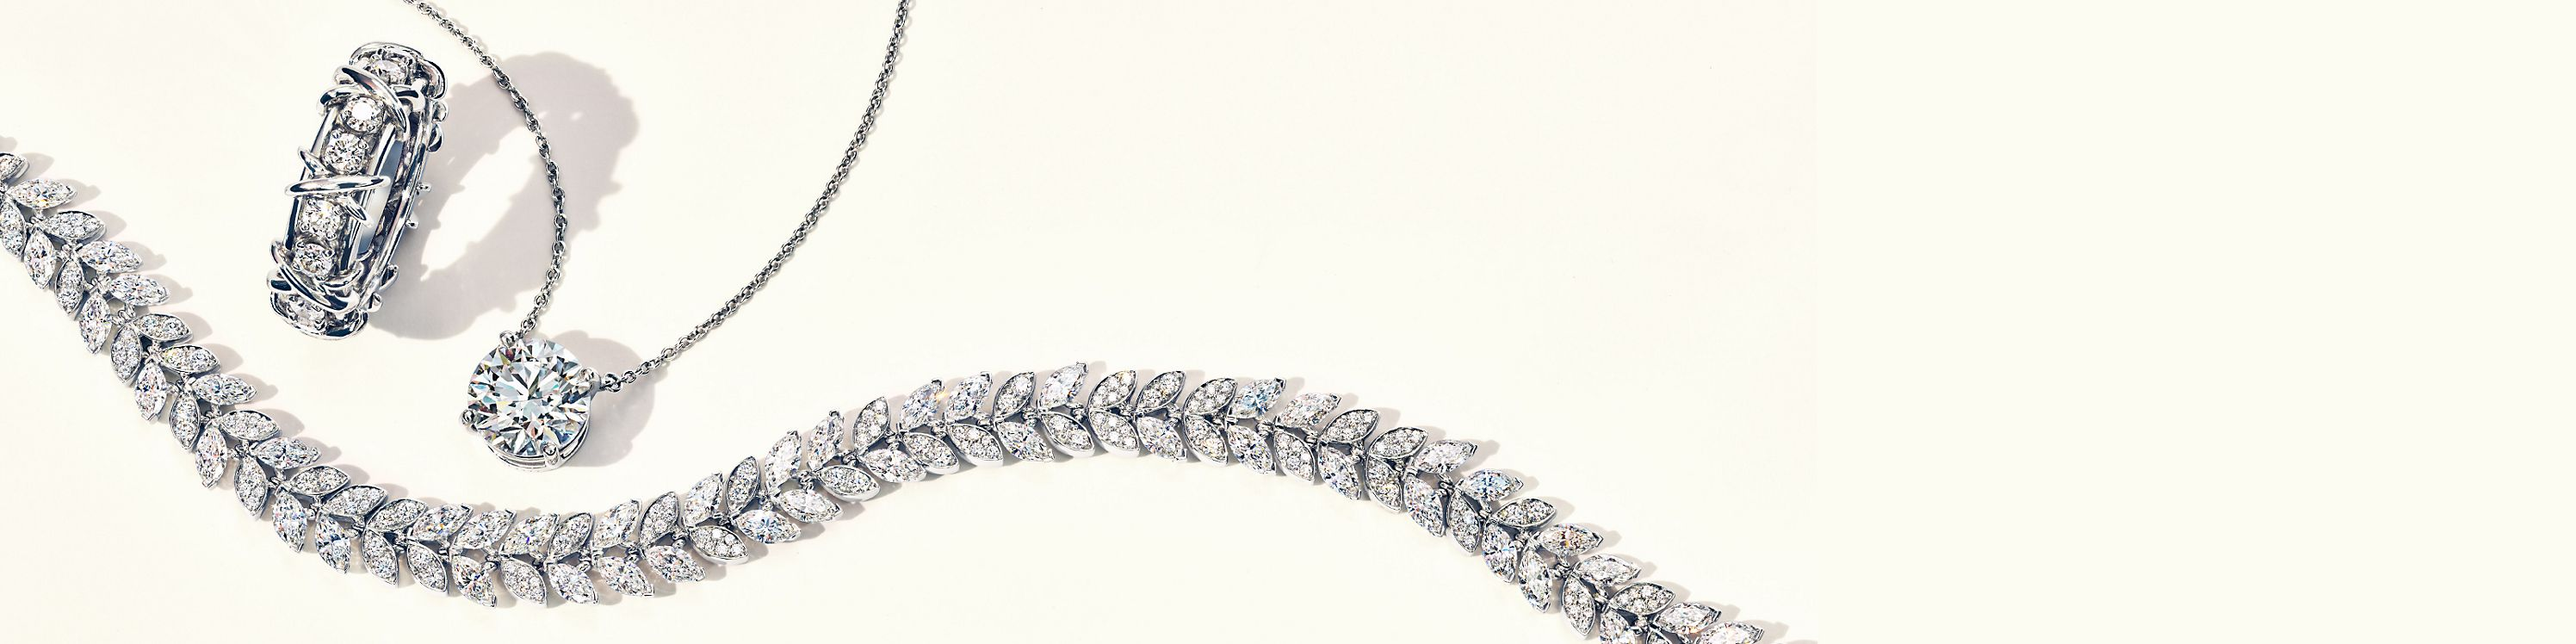 Tiffany & Co. Diamond Jewellery